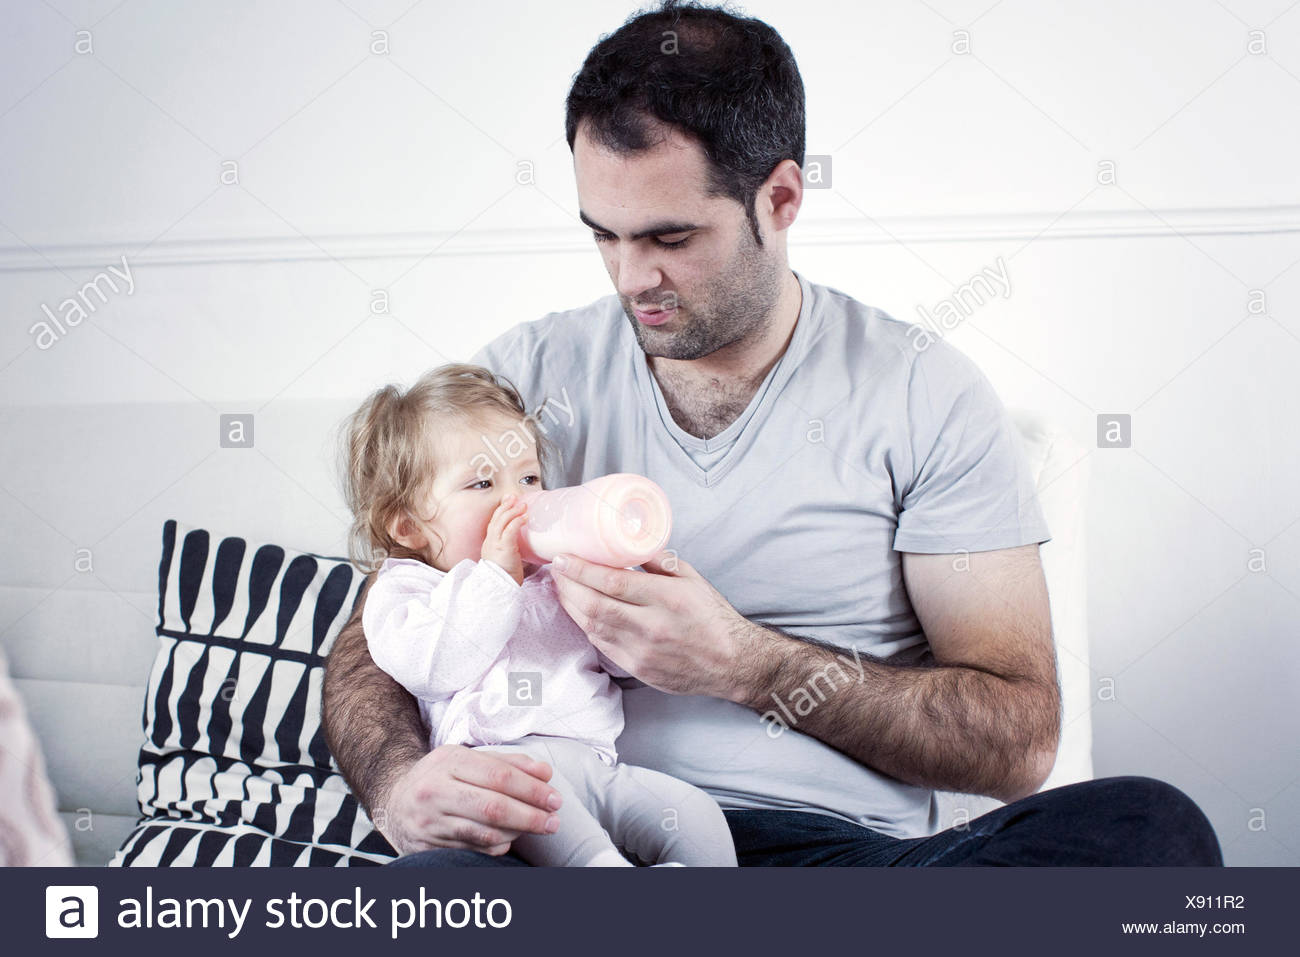 Father holding baby girl on lap, feeding her with bottle - Stock Image